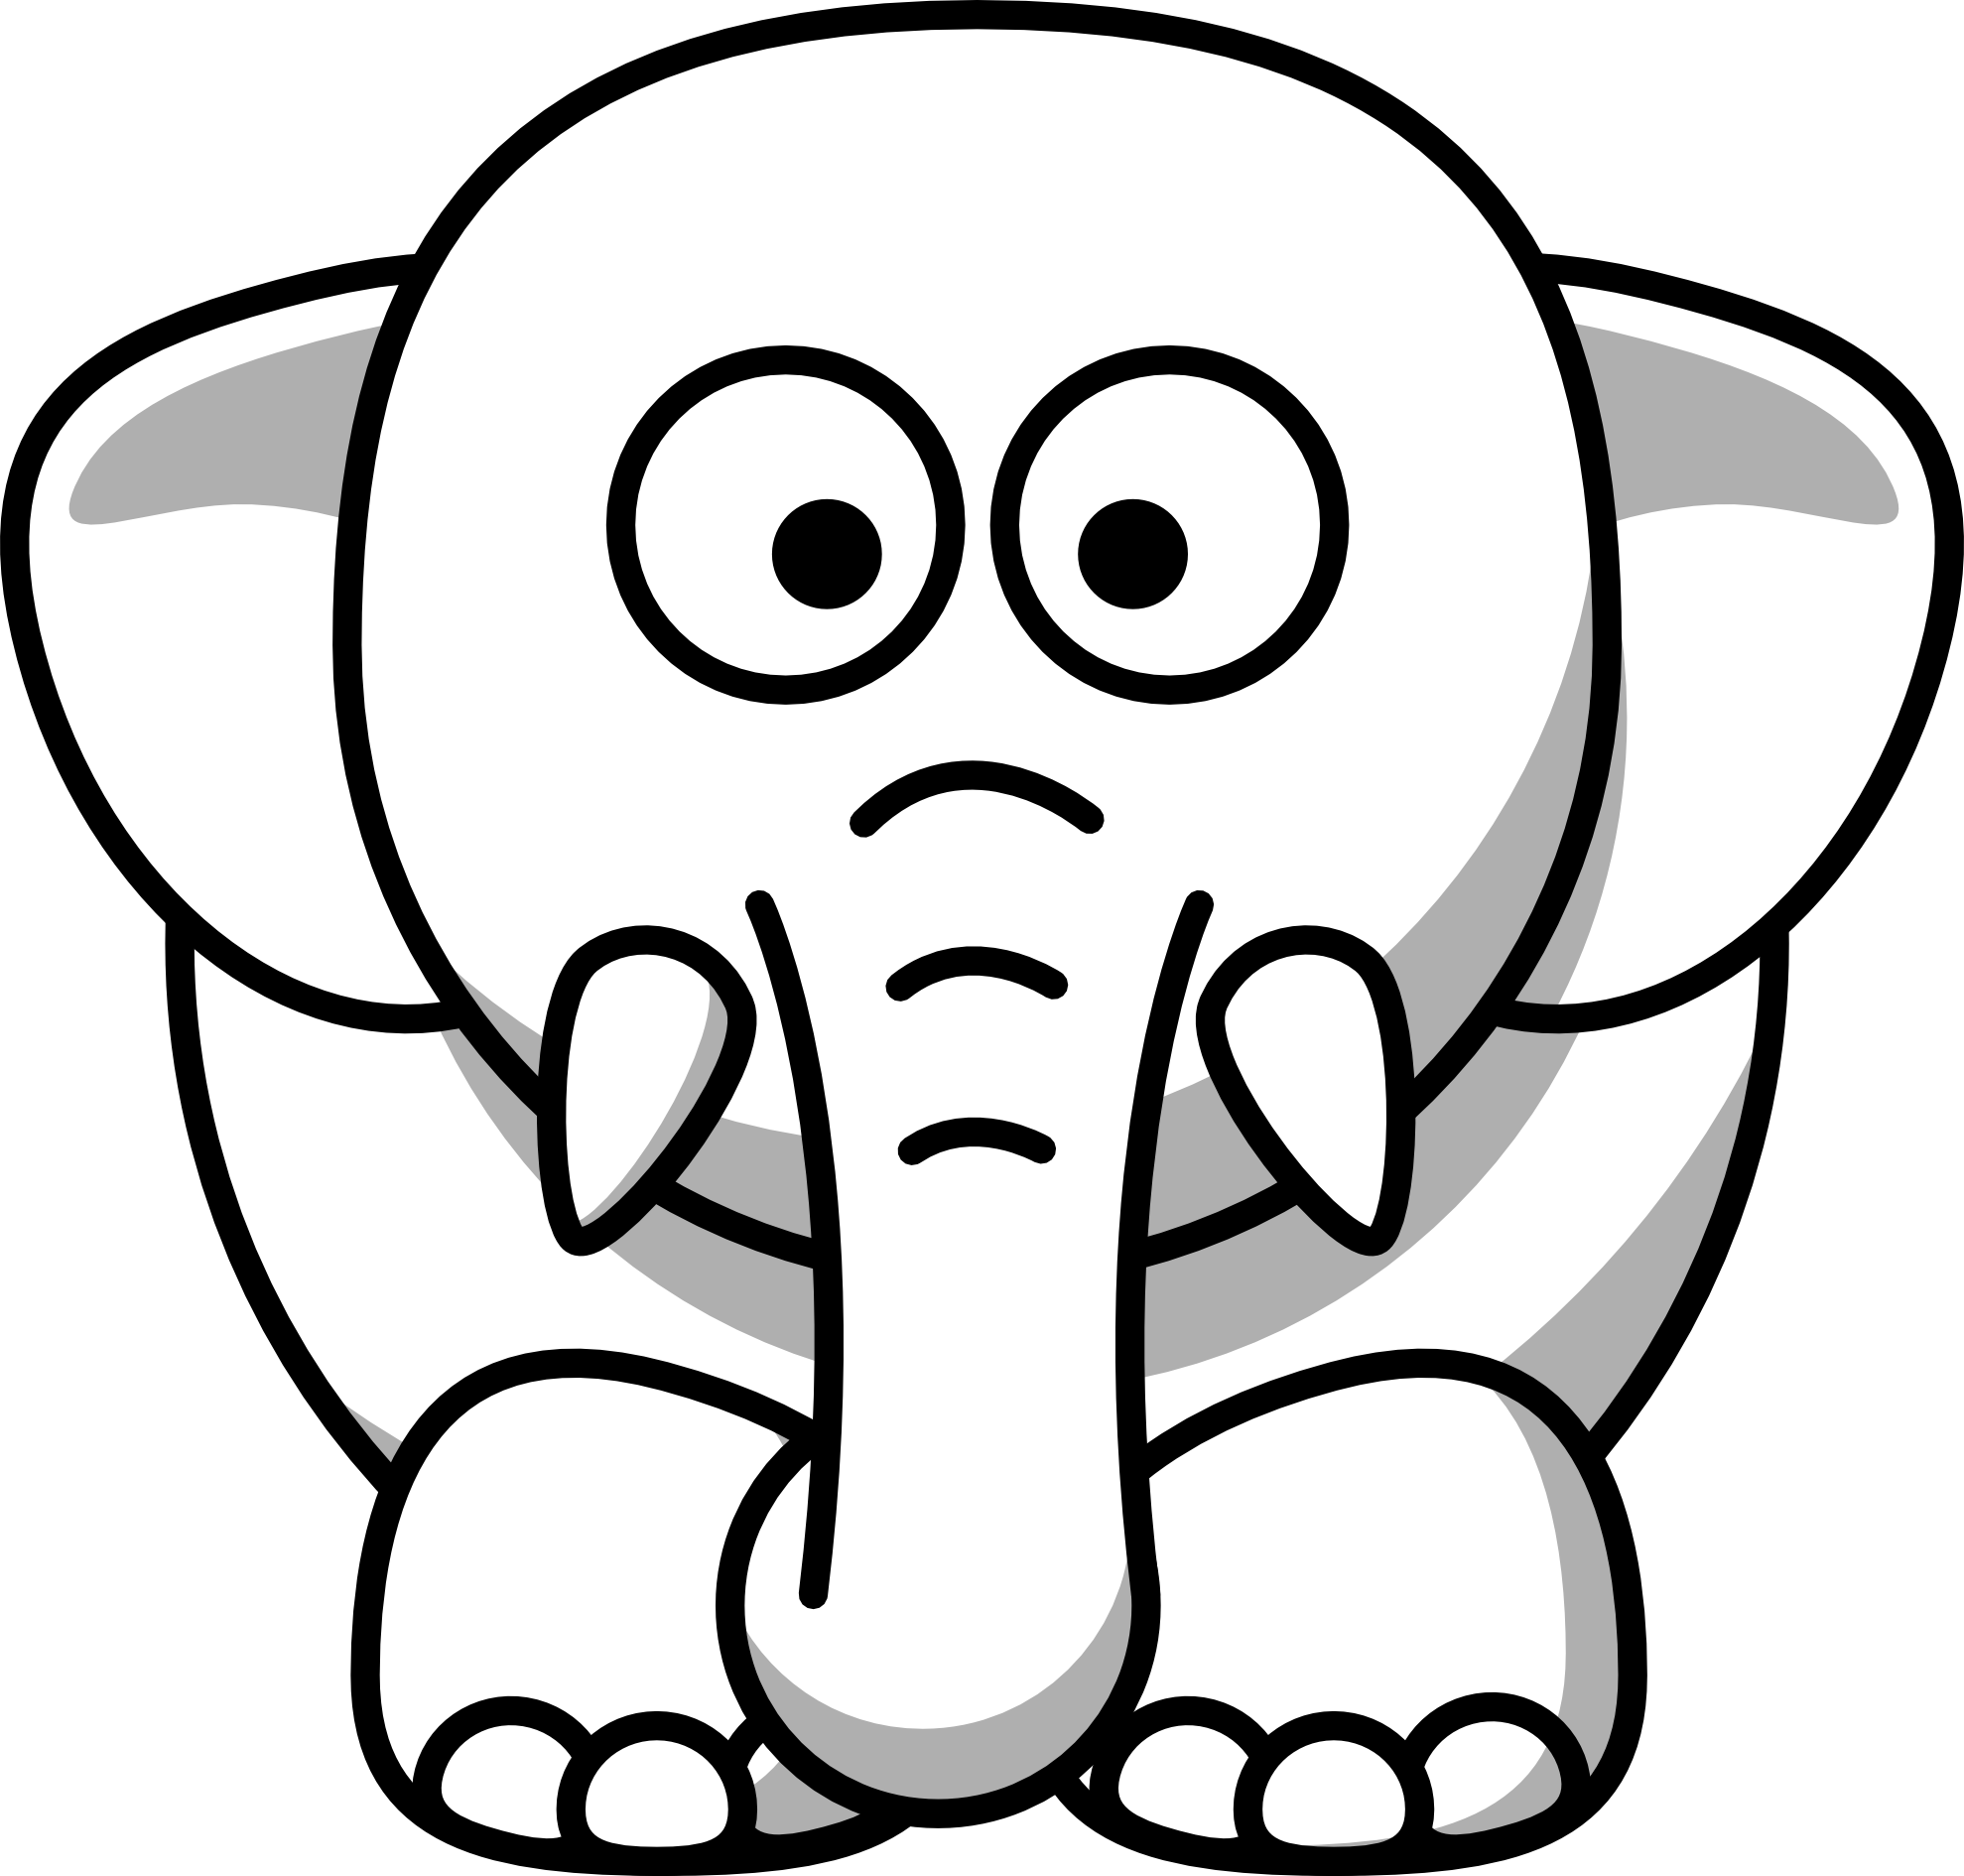 Elephant Clip Art Birthday | Clipart library - Free Clipart Images